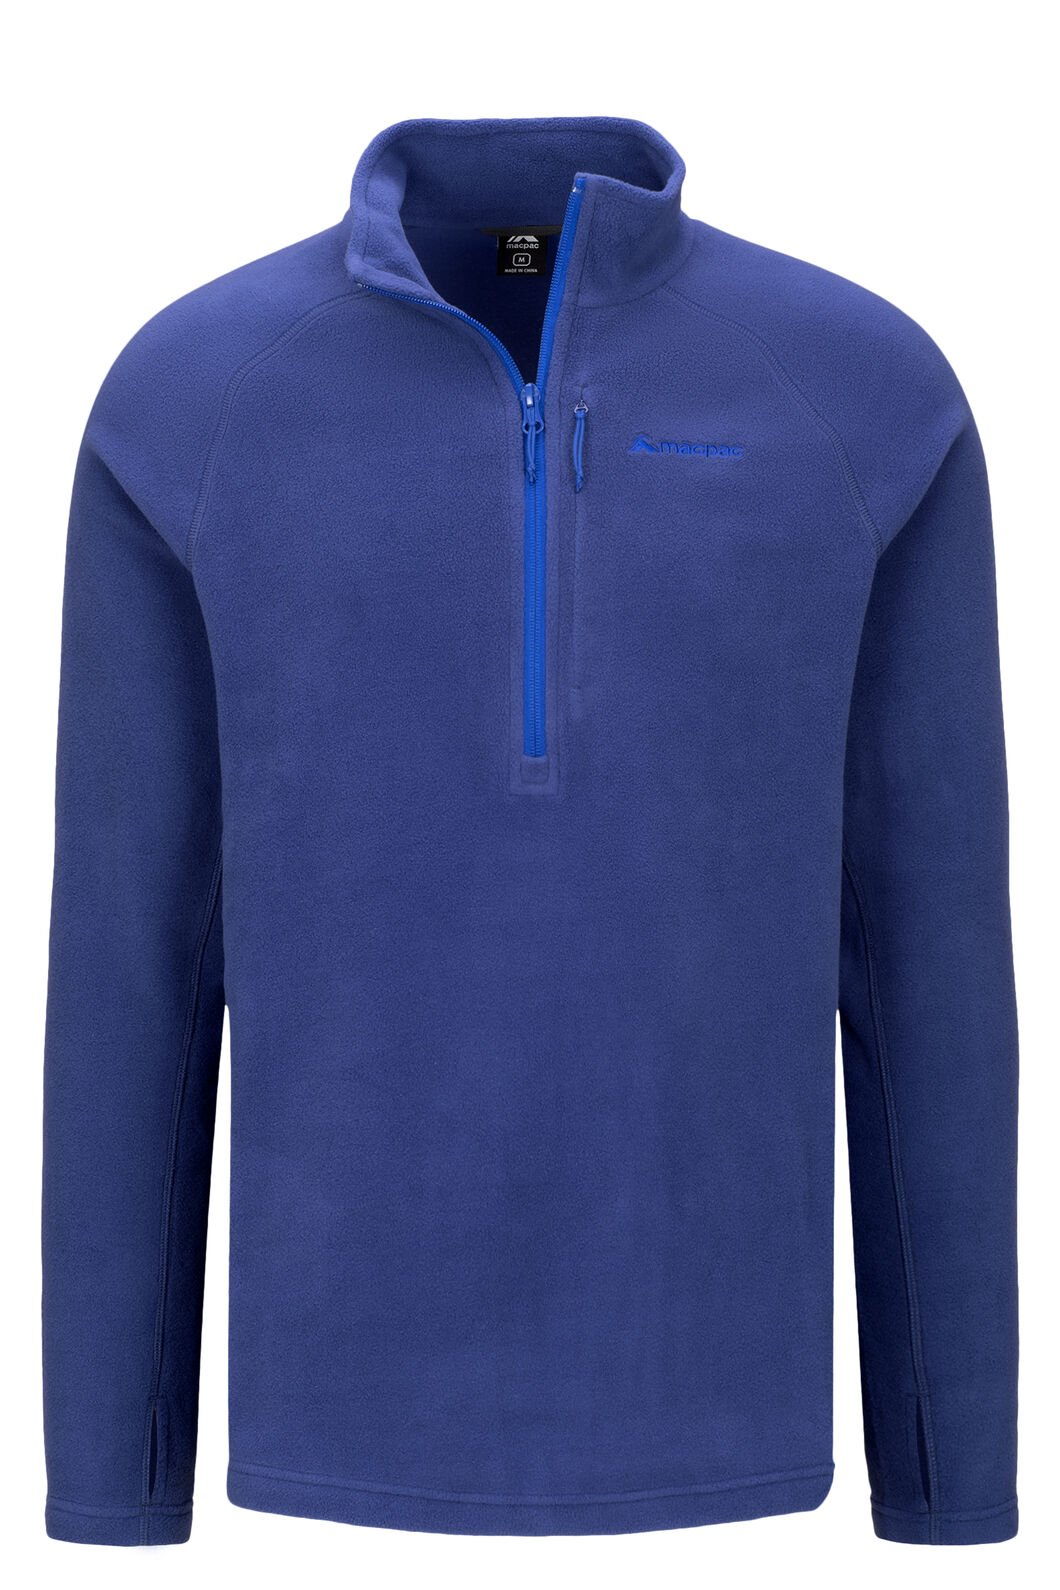 Macpac Tui Polartec® Micro Fleece® Pullover — Men's, Blueprint/Surf the web, hi-res